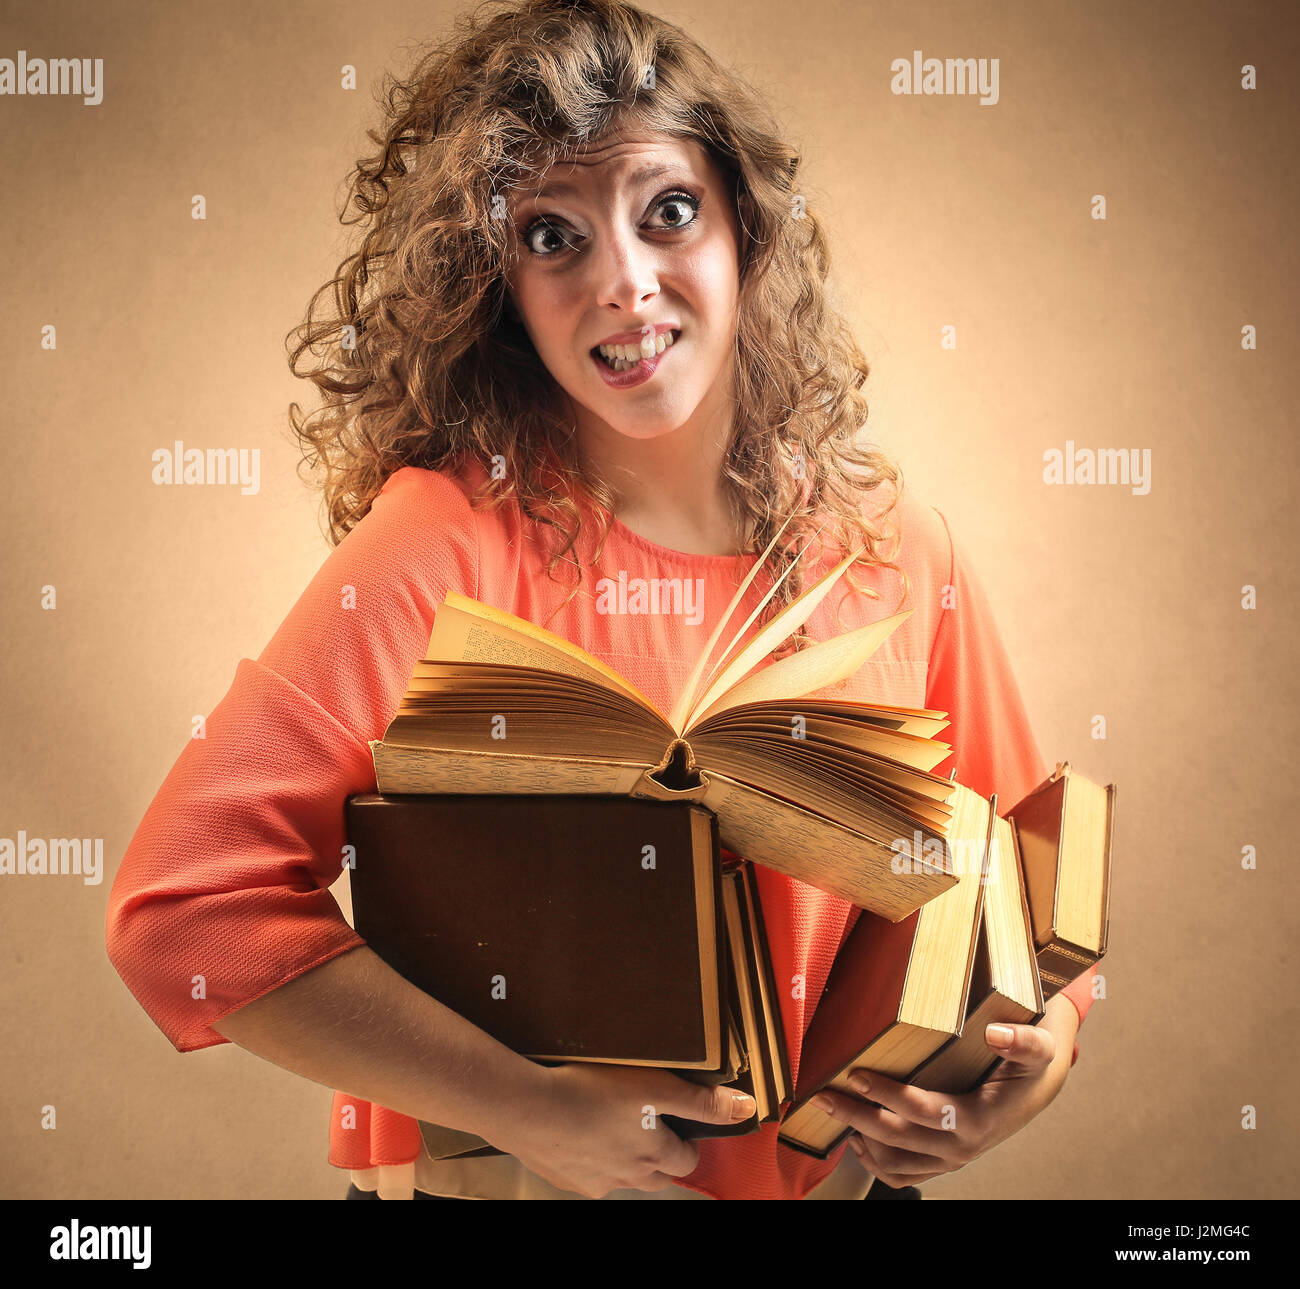 Woman carrying huge books - Stock Image